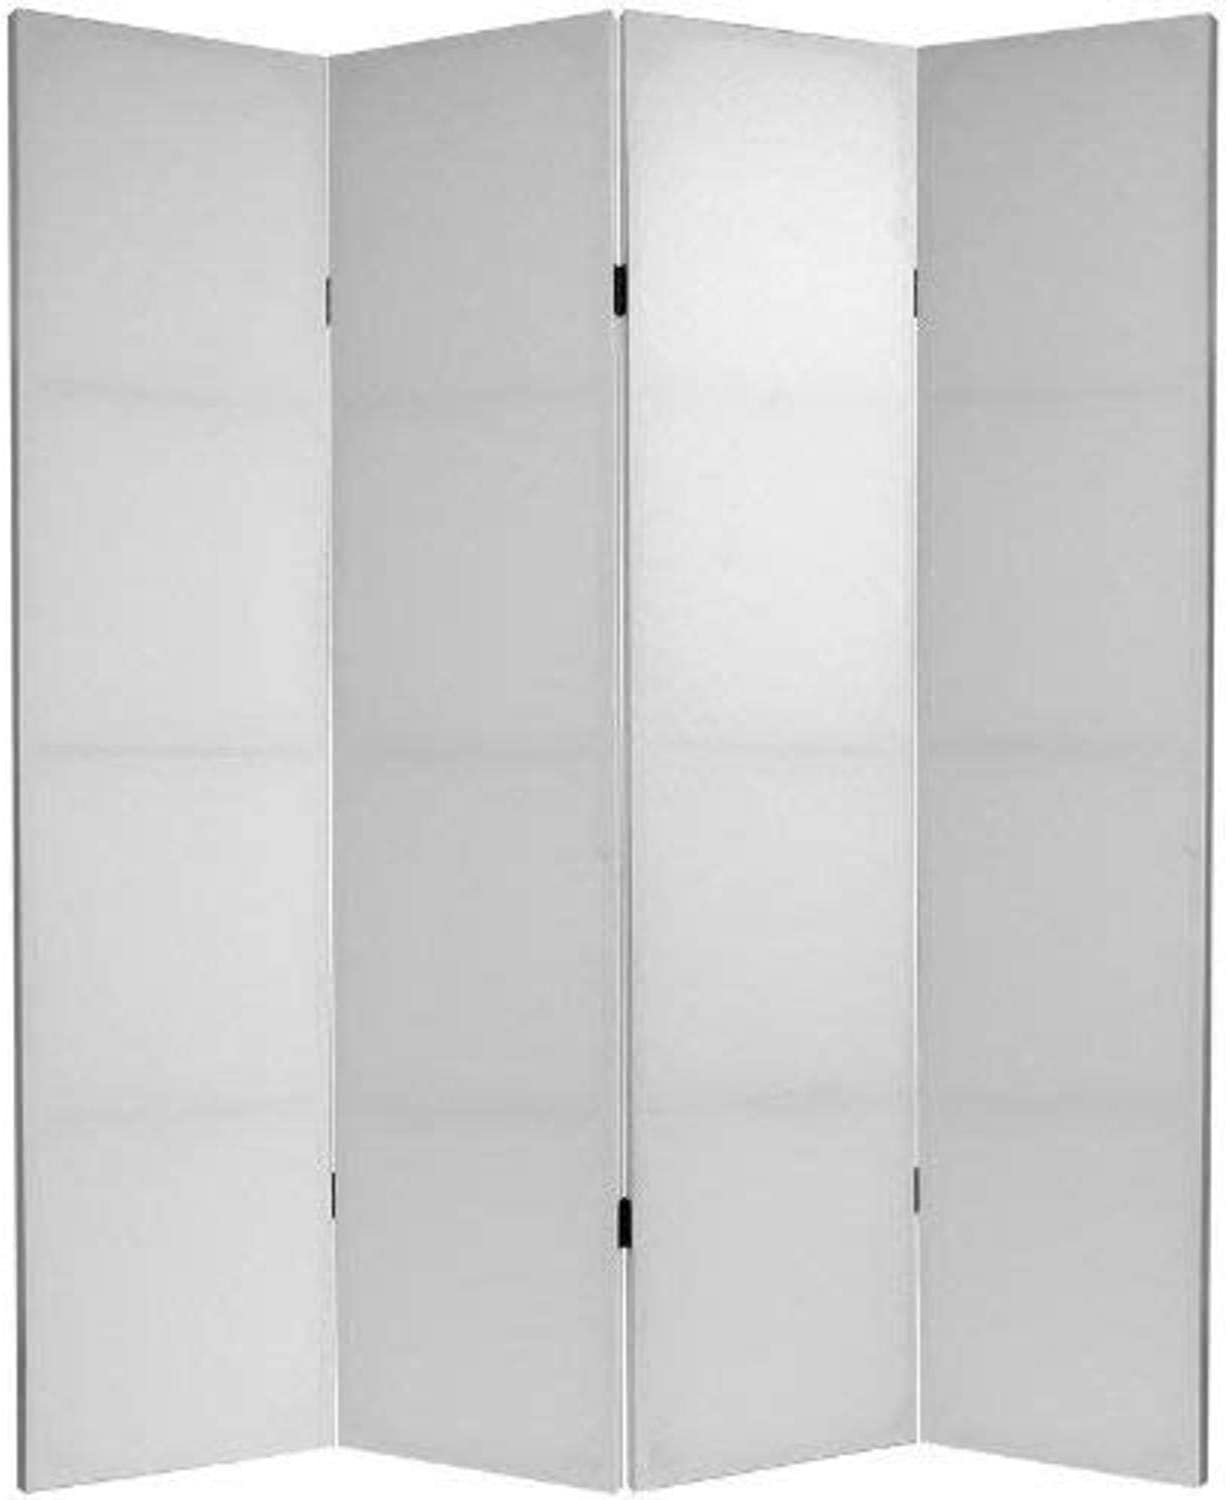 Oriental Furniture 6 ft. Tall Do It Yourself Canvas Room Divider 4 Panel